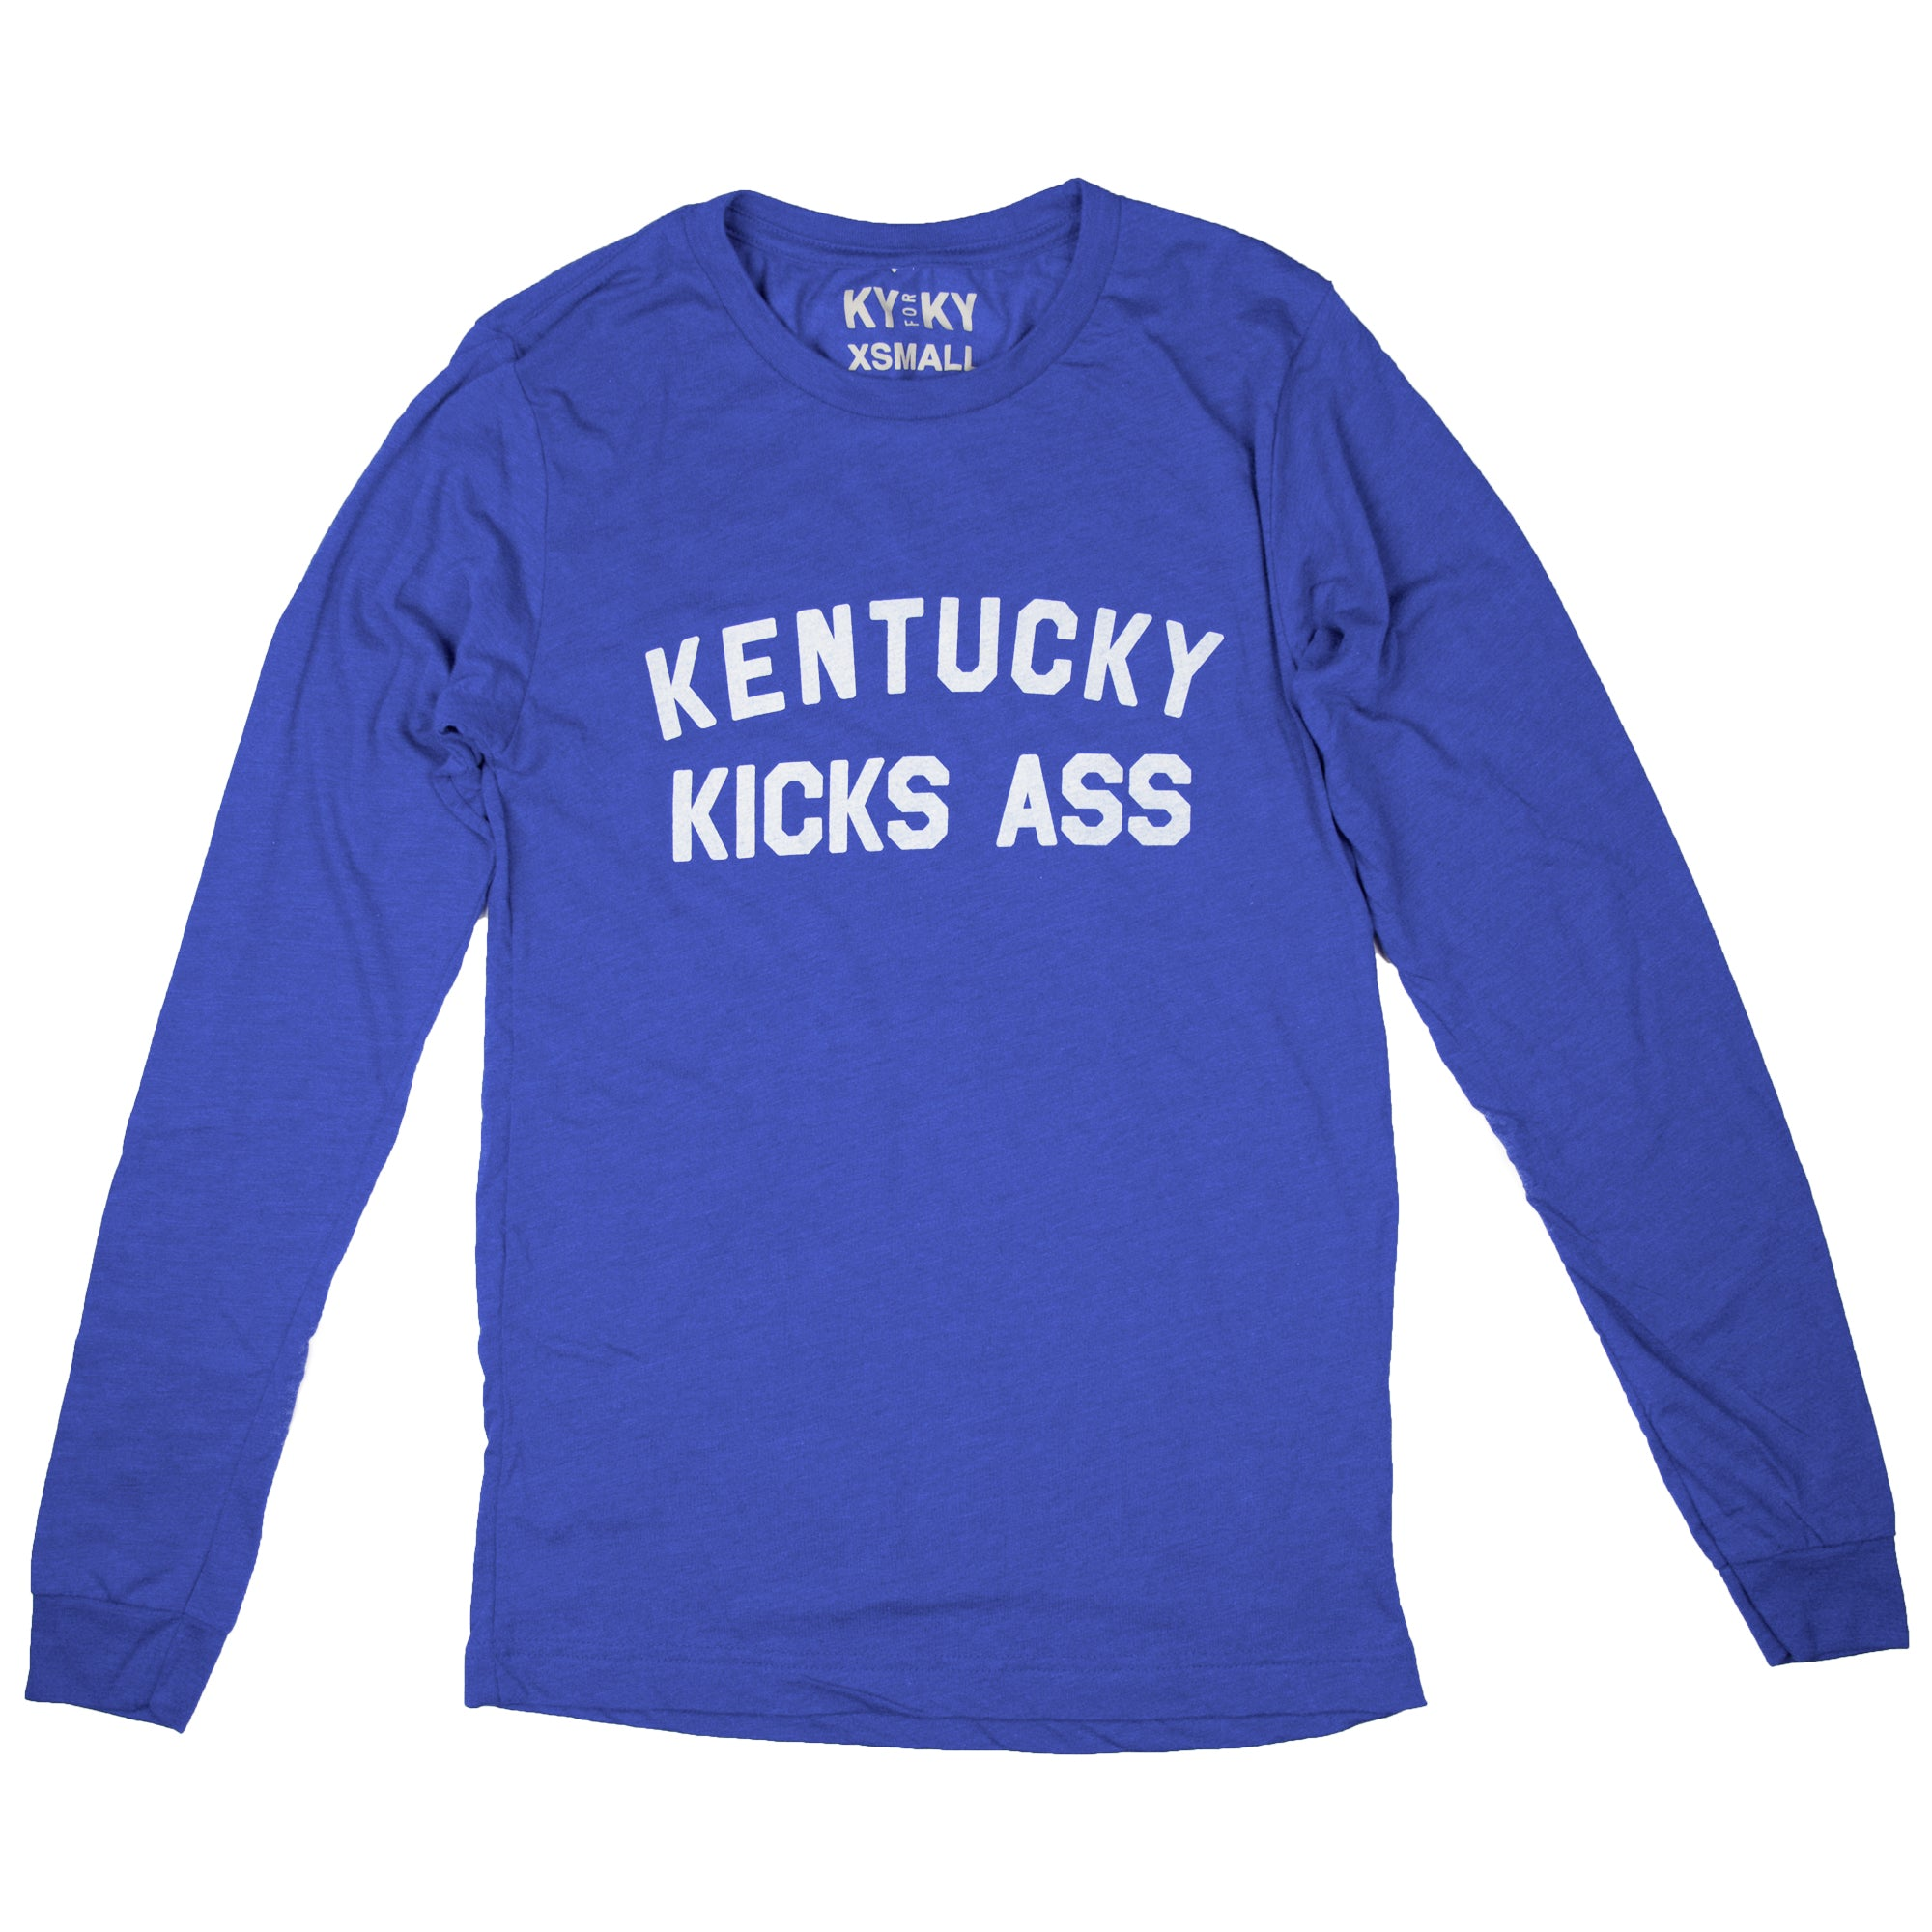 Long Sleeve Kentucky Kicks Ass Shirt-T-Shirt-KY for KY Store